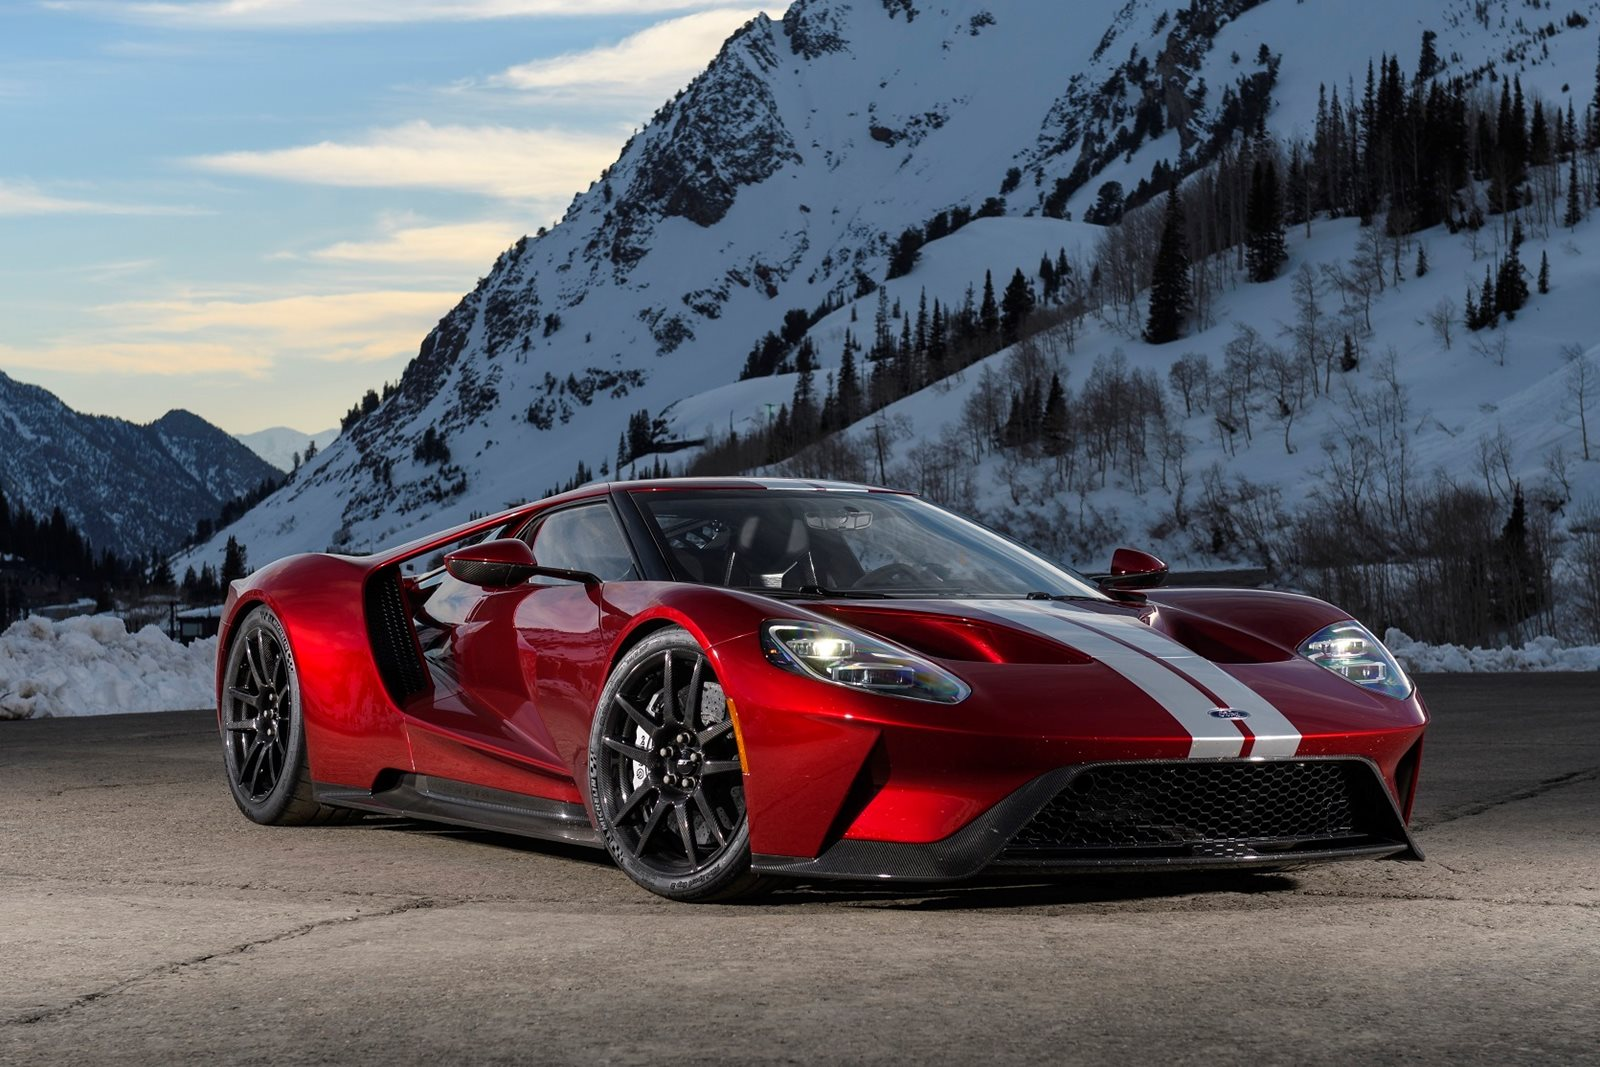 2018 Ford GT Coupe Review, Trims, Specs and Price - CarBuzz